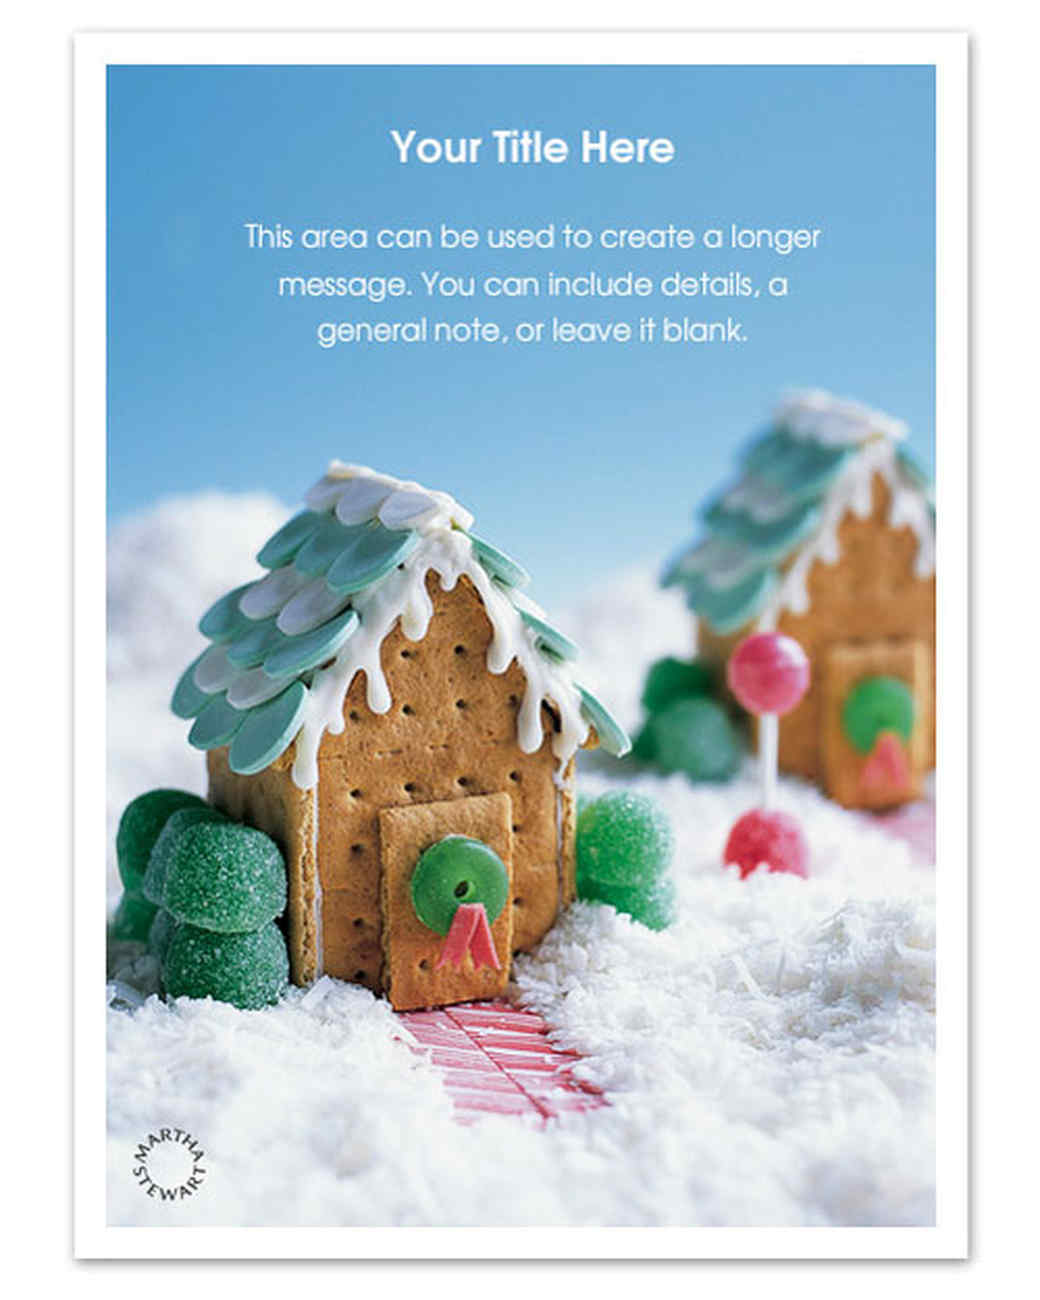 pingg_gingerbread_house2.jpg